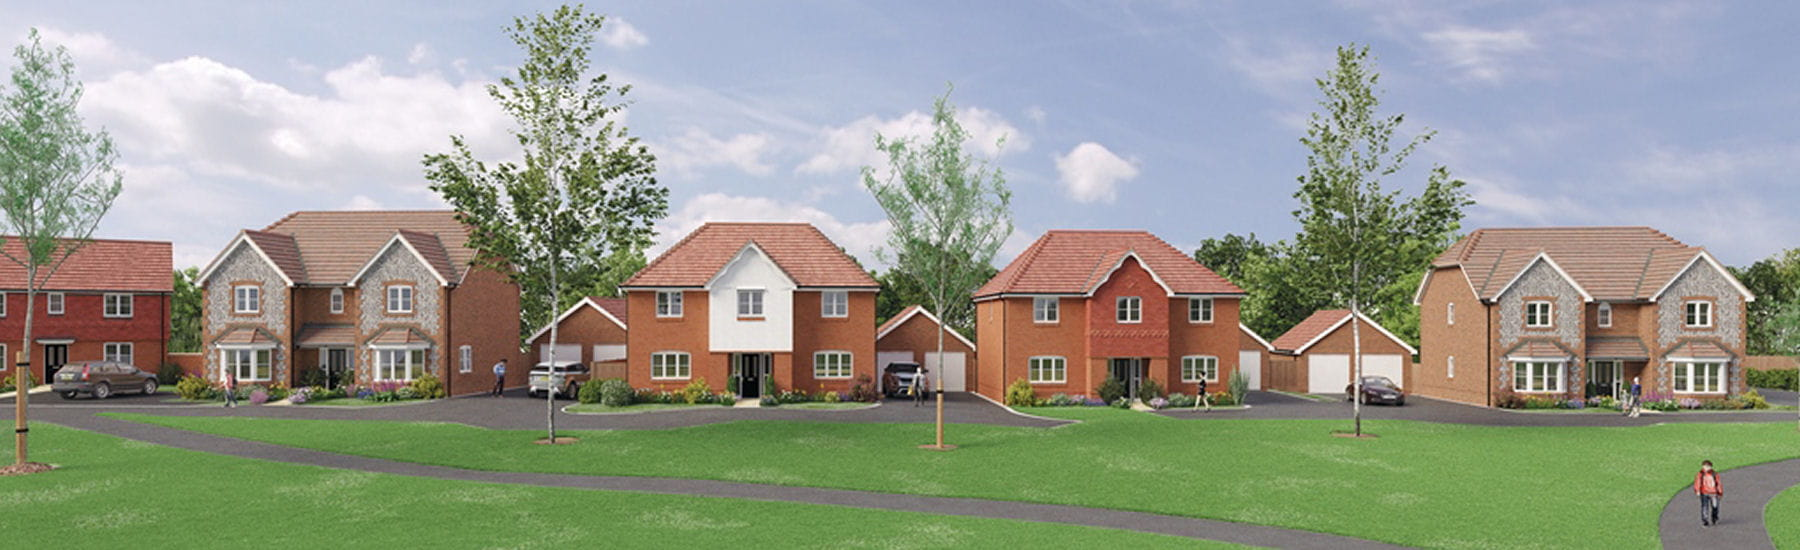 New Build Homes For Sale In Crawley